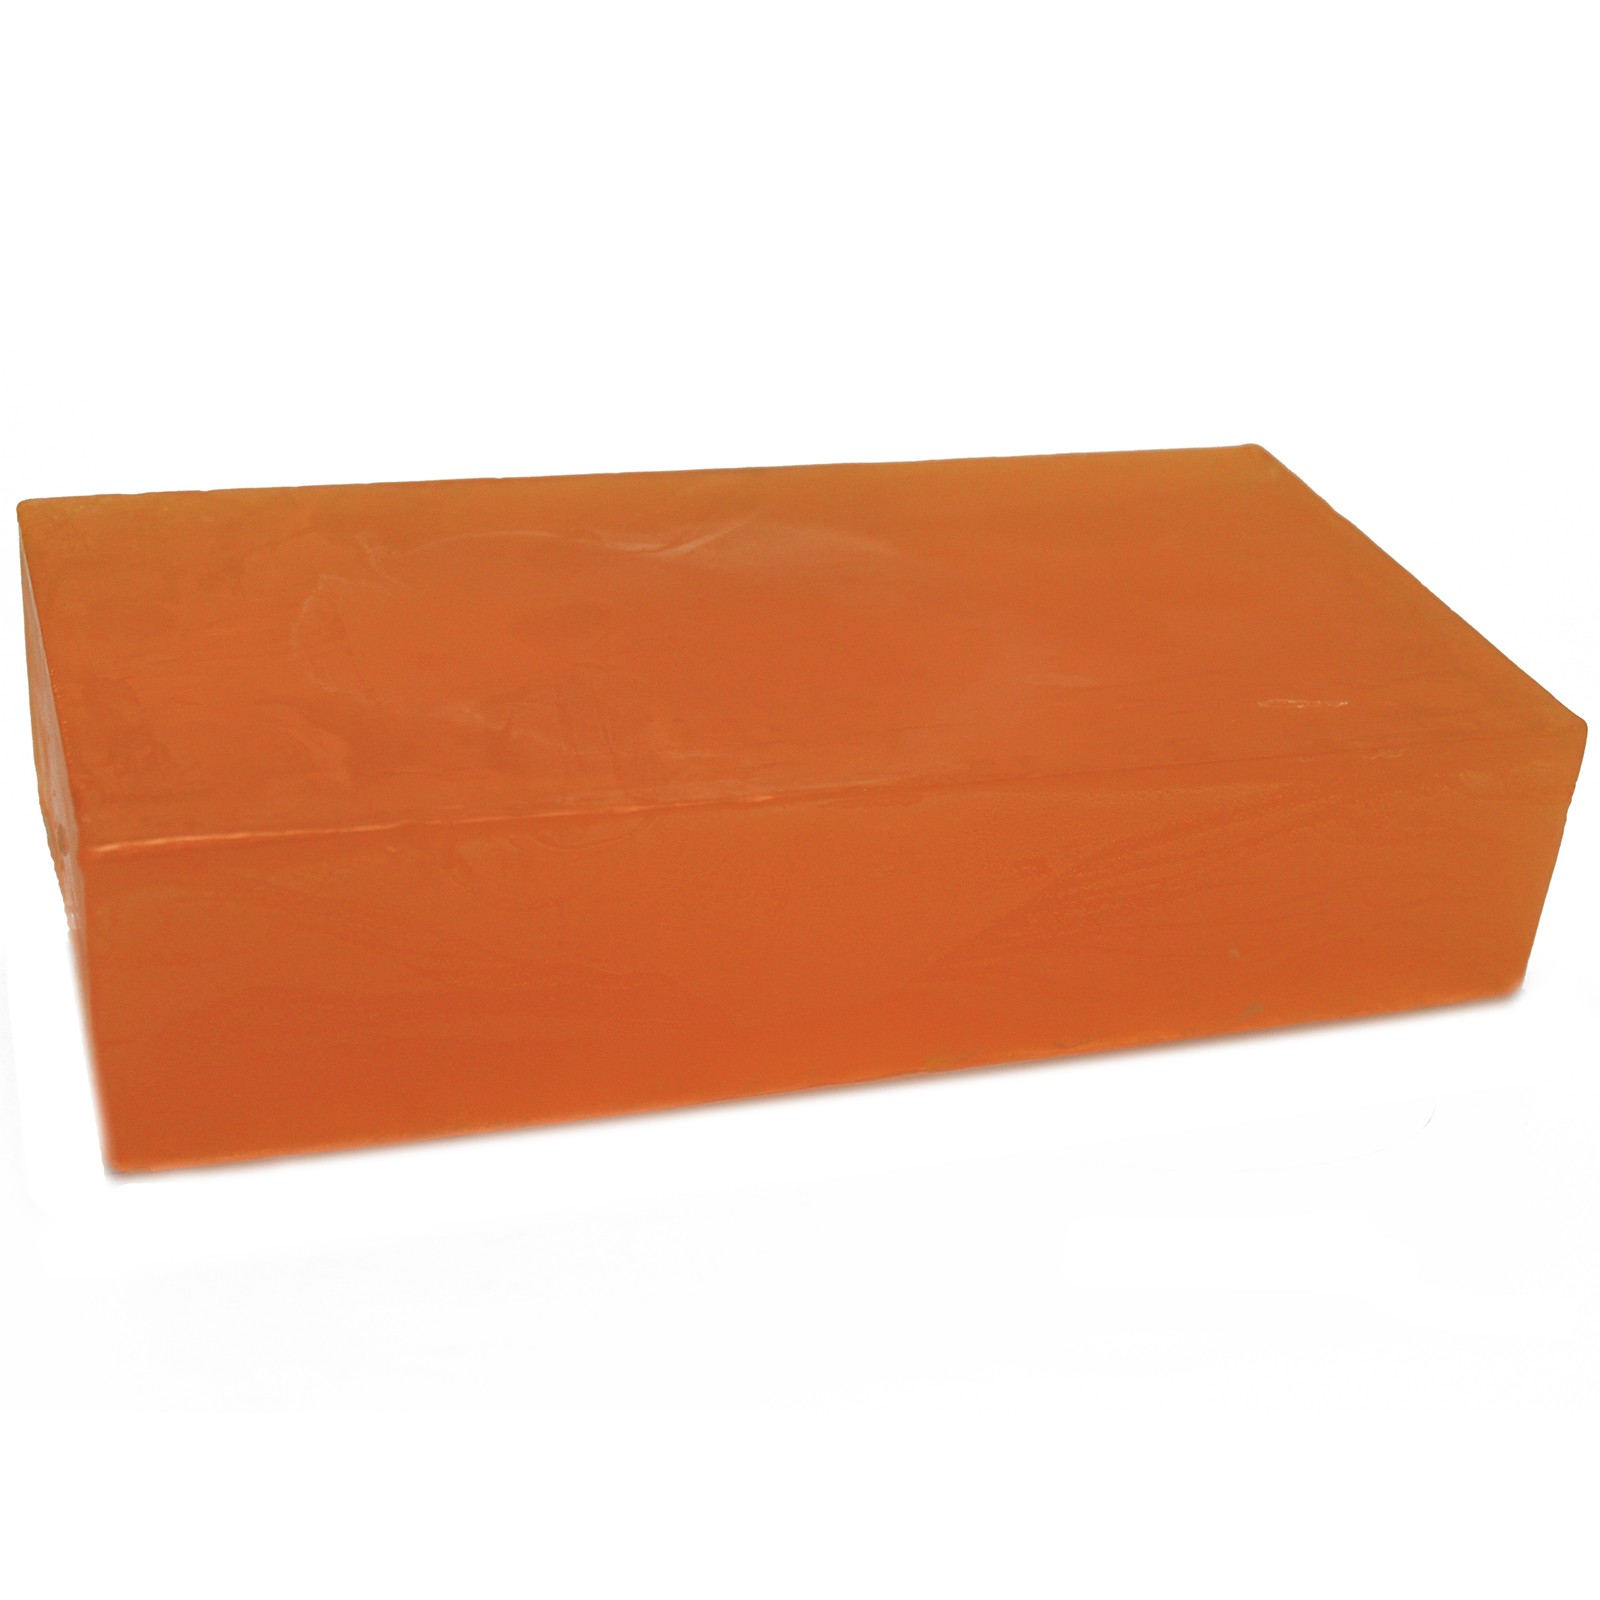 May Chang Essential Oil Soap Loaf 2kg